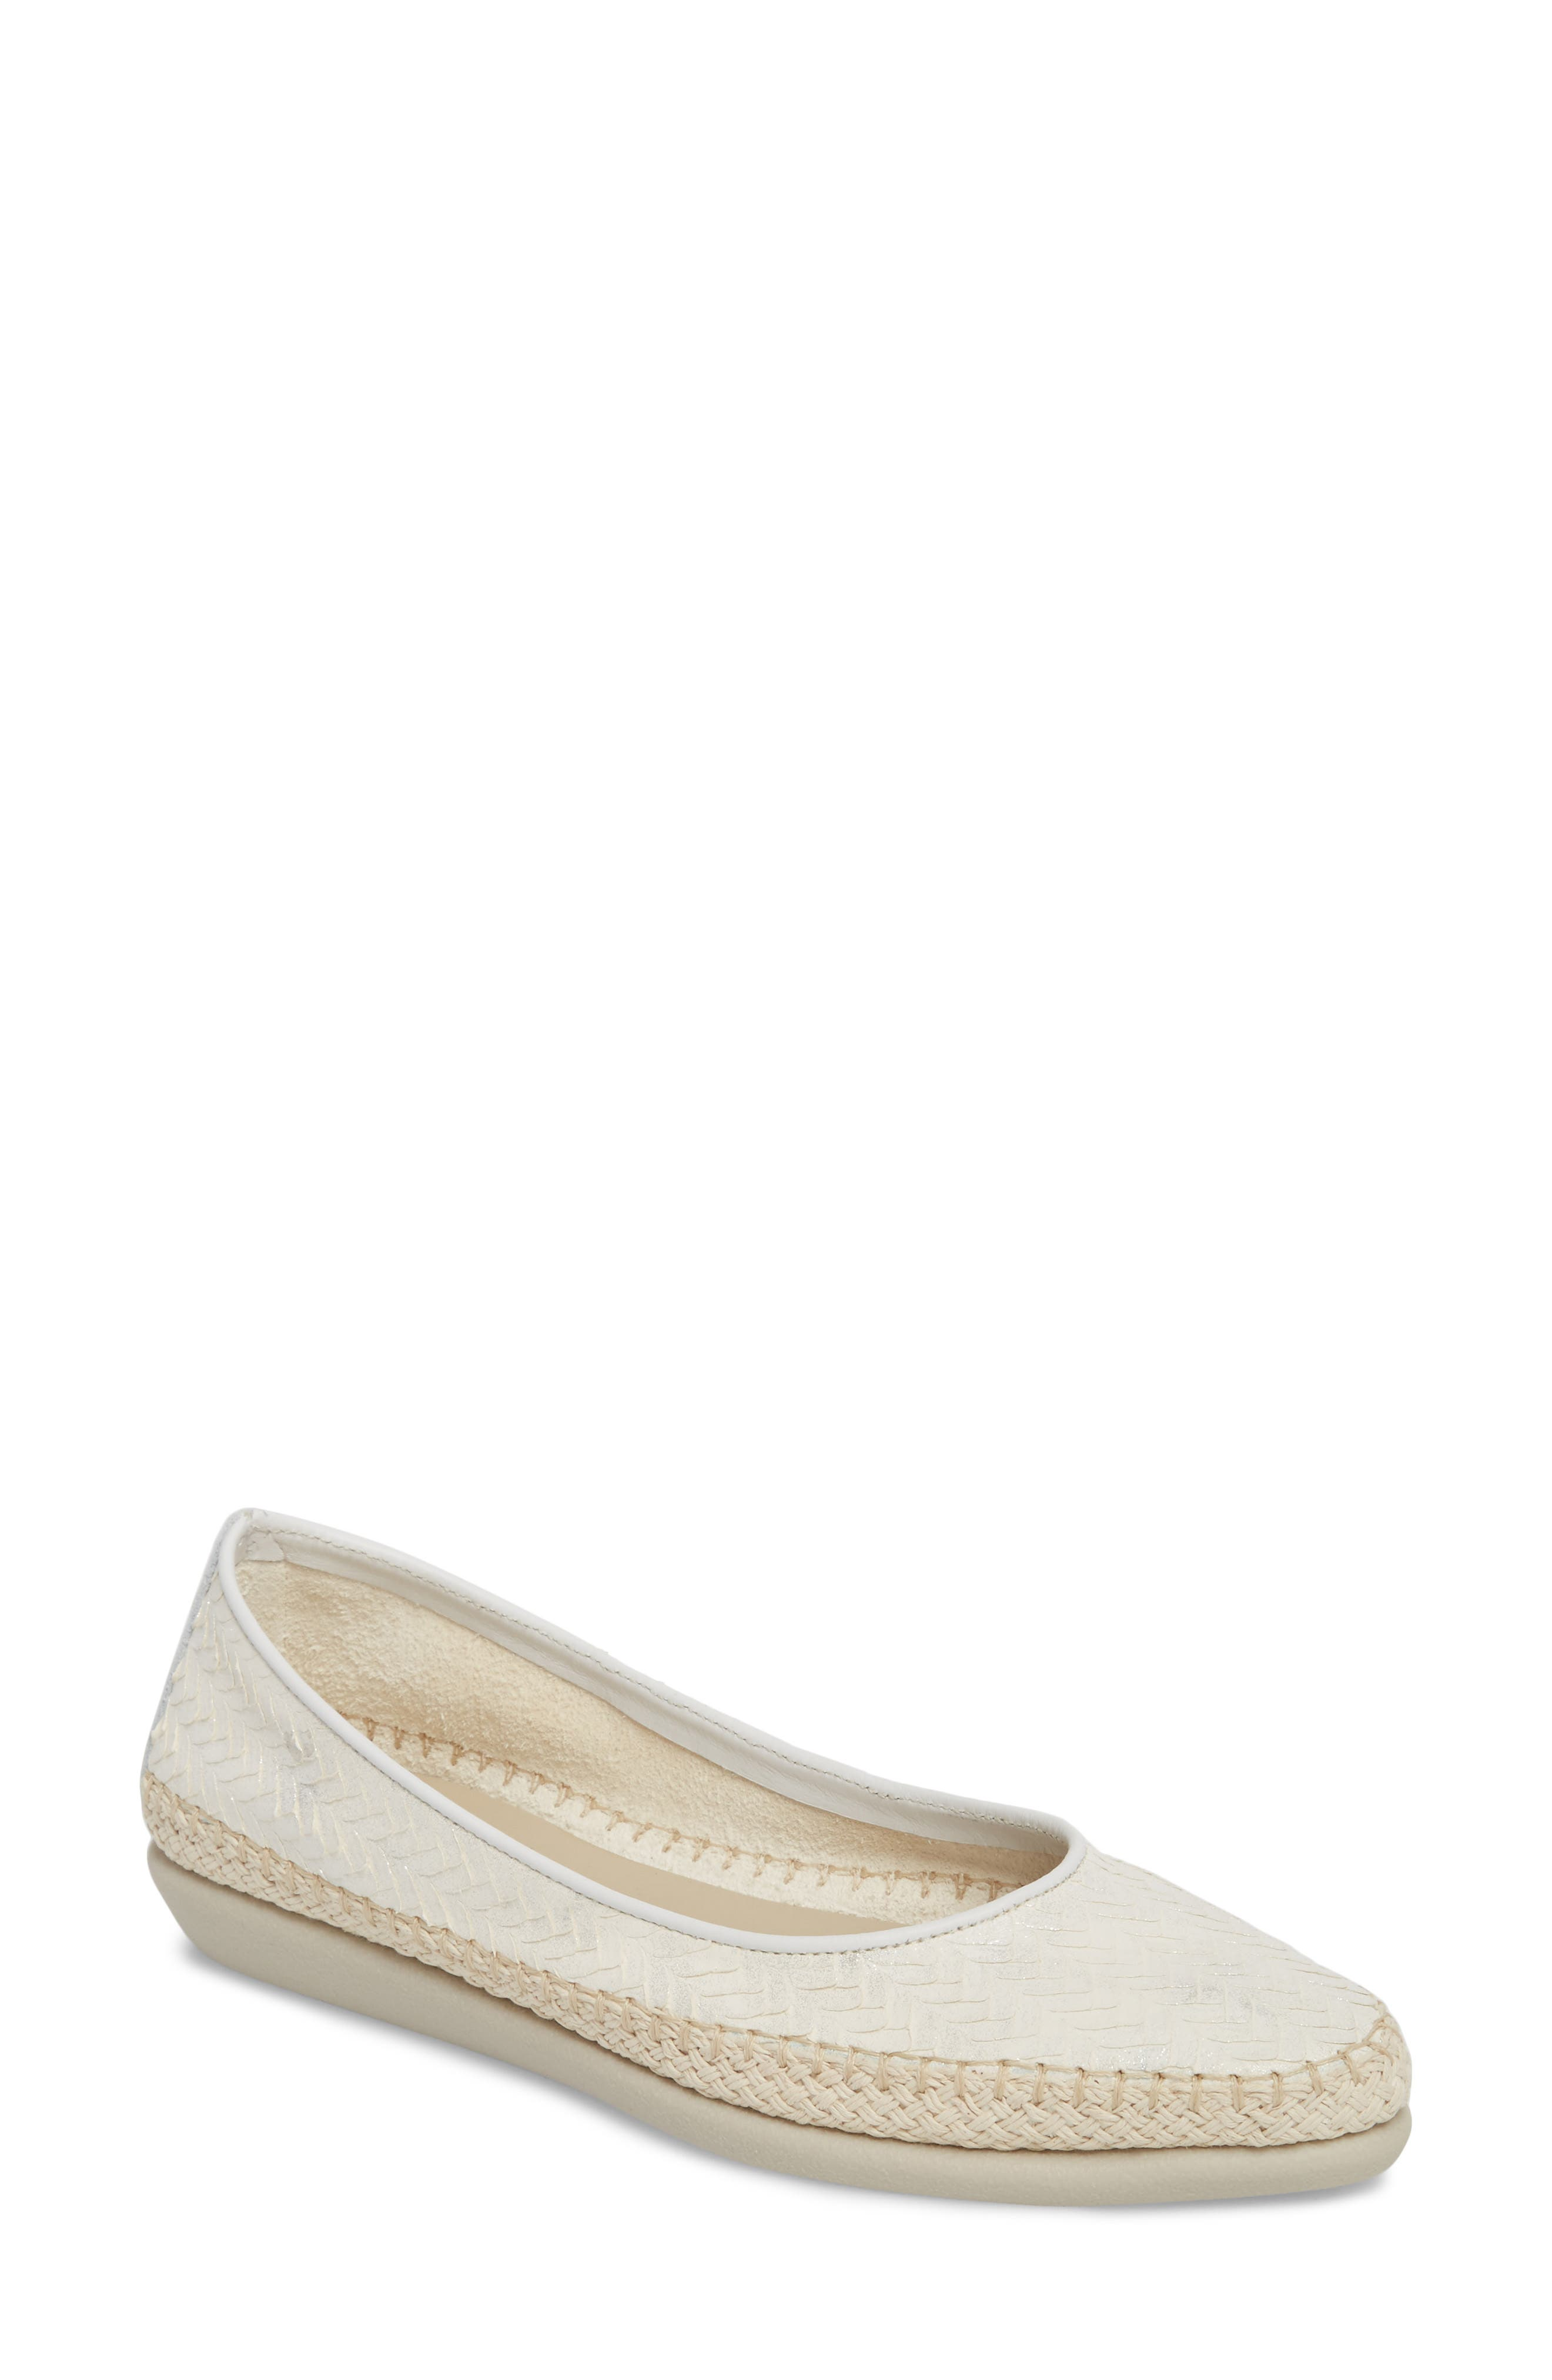 'Torri' Perforated Espadrille Flat,                         Main,                         color, Pearl Leather